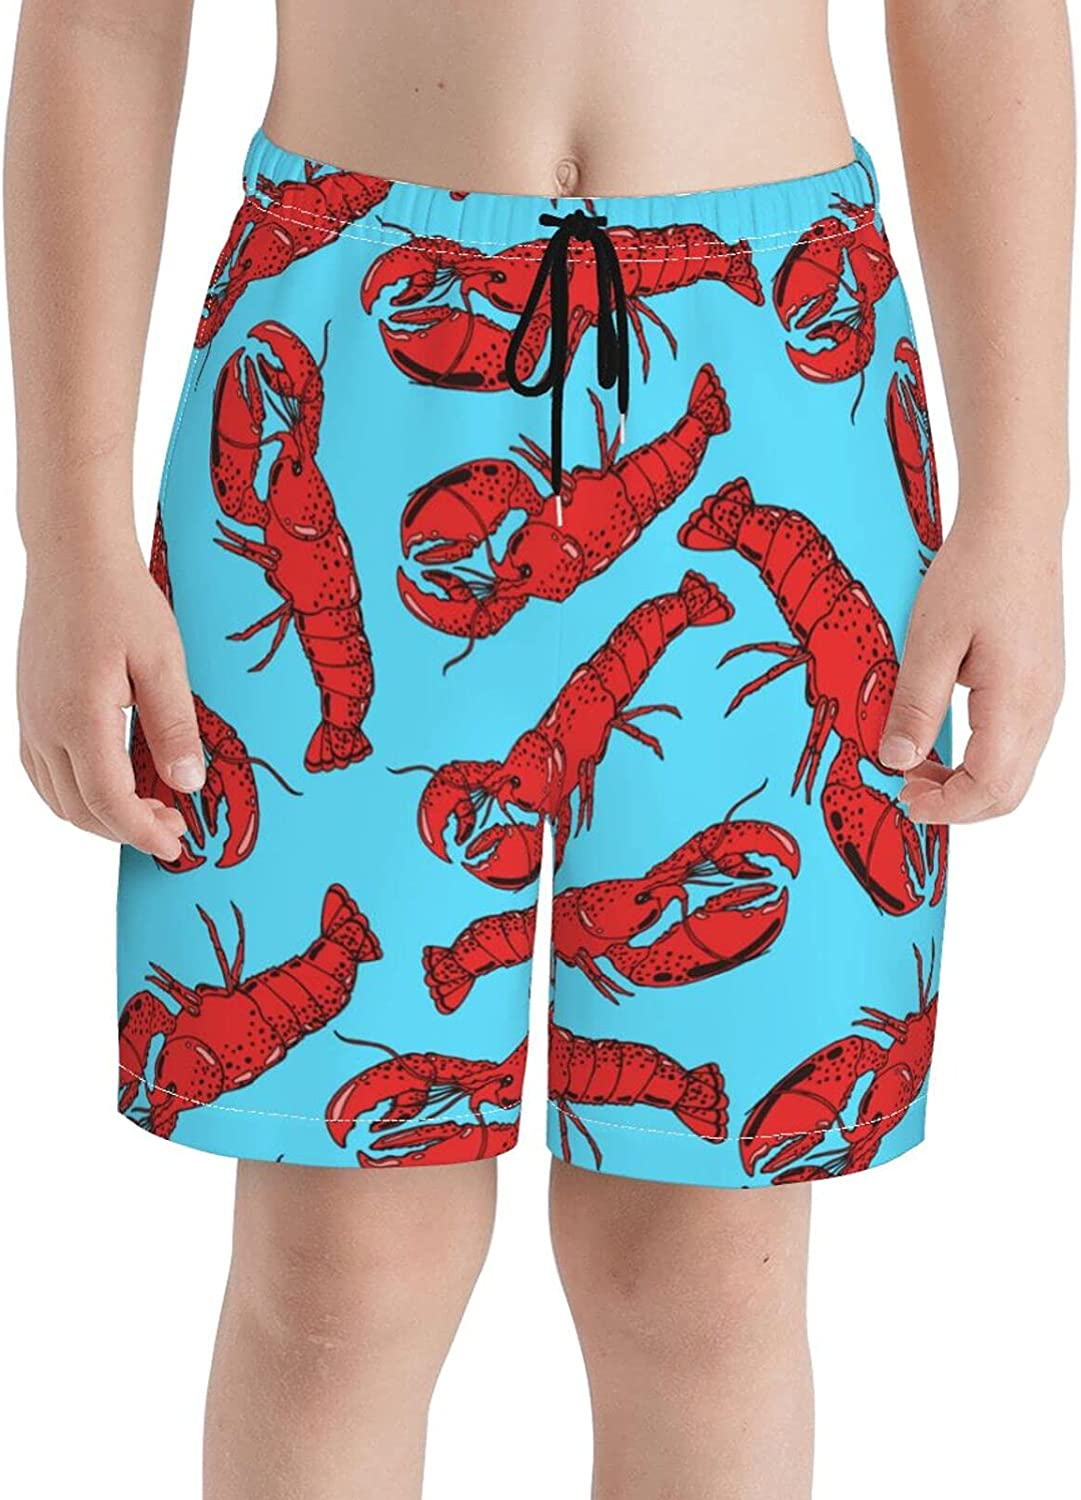 Fairy UMI Cooked Lobster Boys Quick Dry Swim Trunks Youth Soft Beach Surfing Board Shorts 7-20 Years